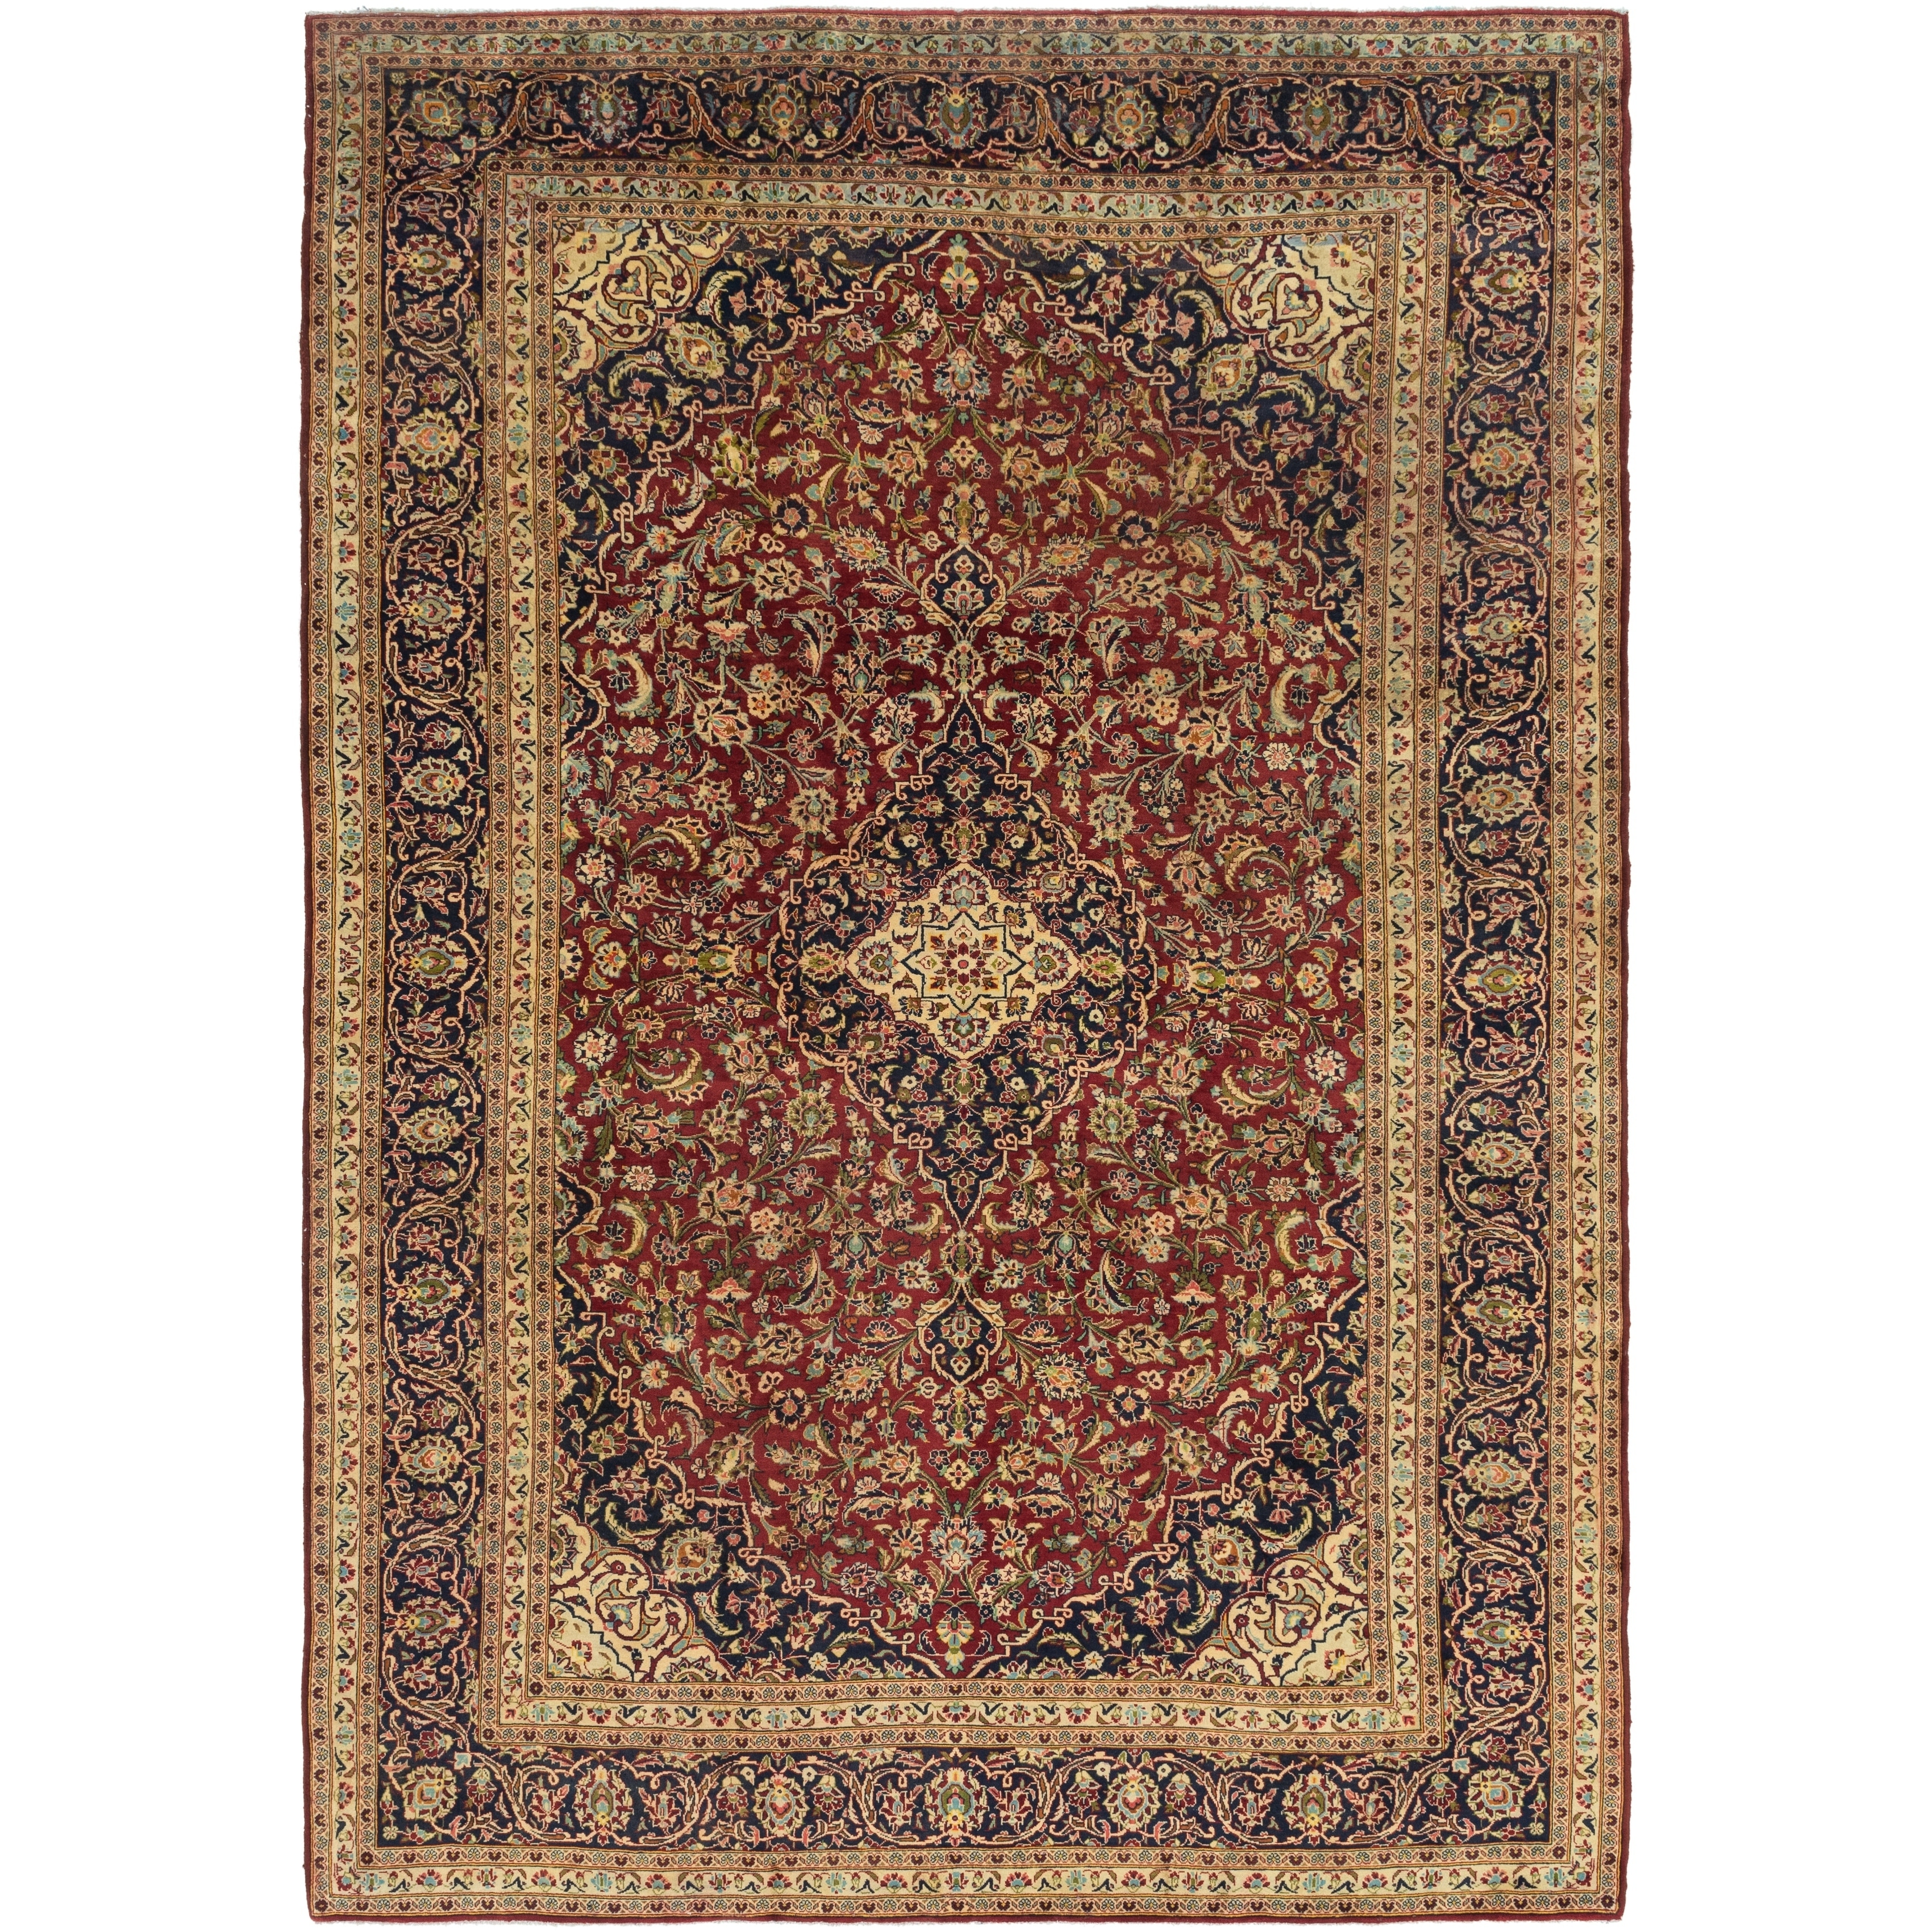 Hand Knotted Kashan Semi Antique Wool Area Rug - 9 10 x 14 2 (Beige - 9 10 x 14 2)